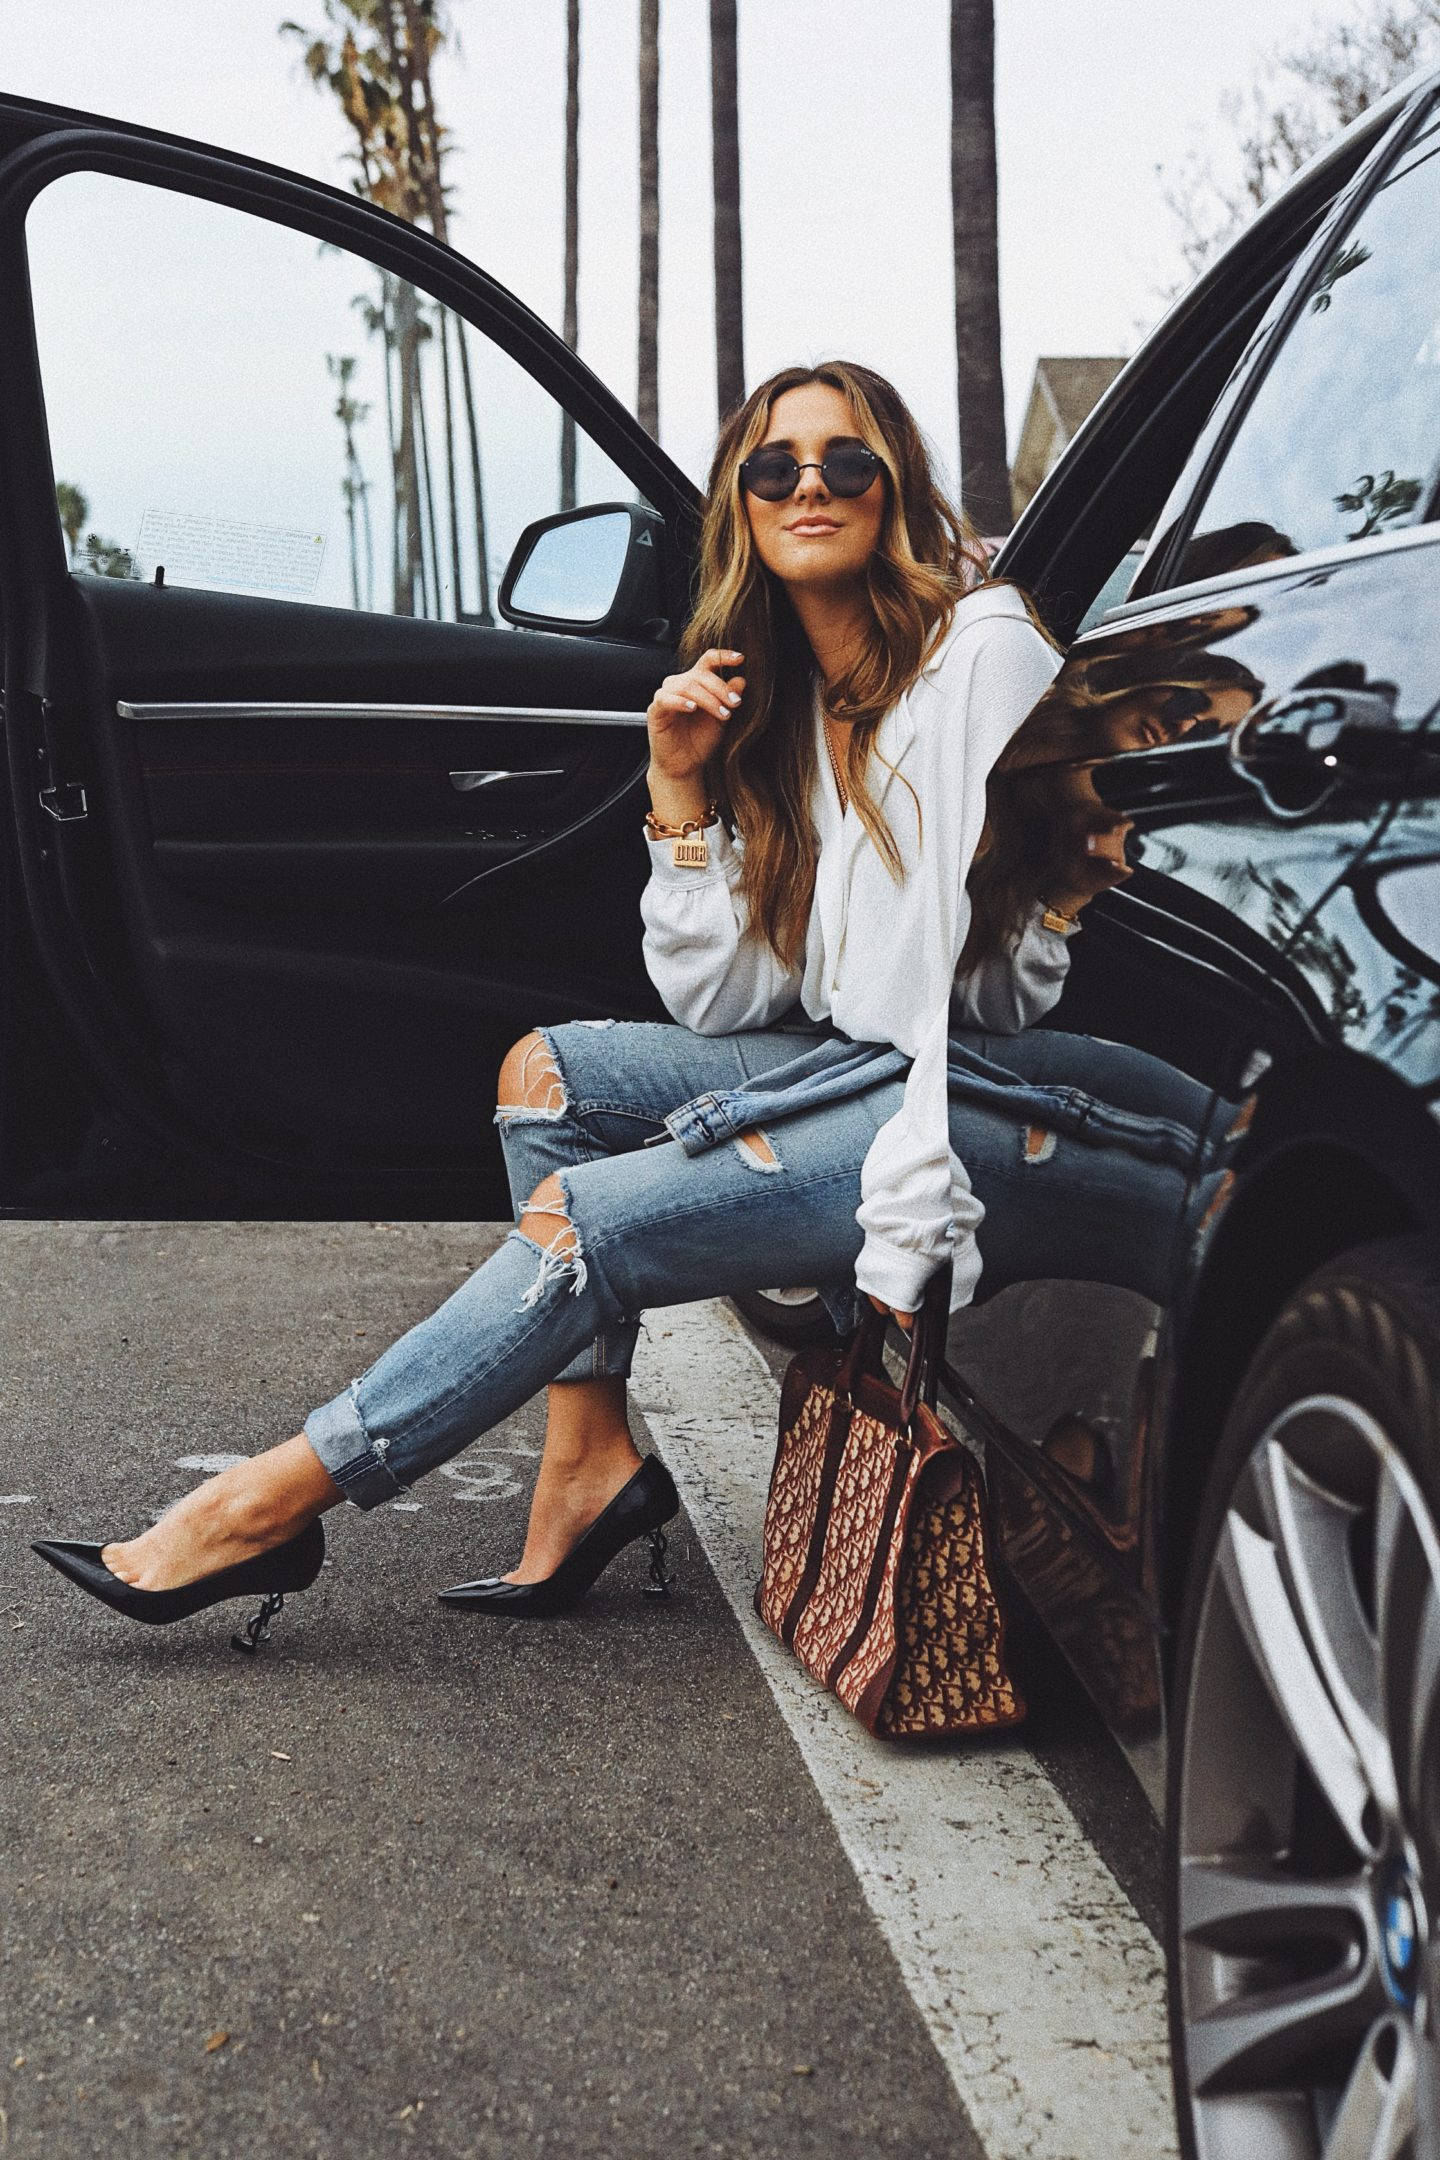 4 Tips for Upping Your Casual Outfit Game